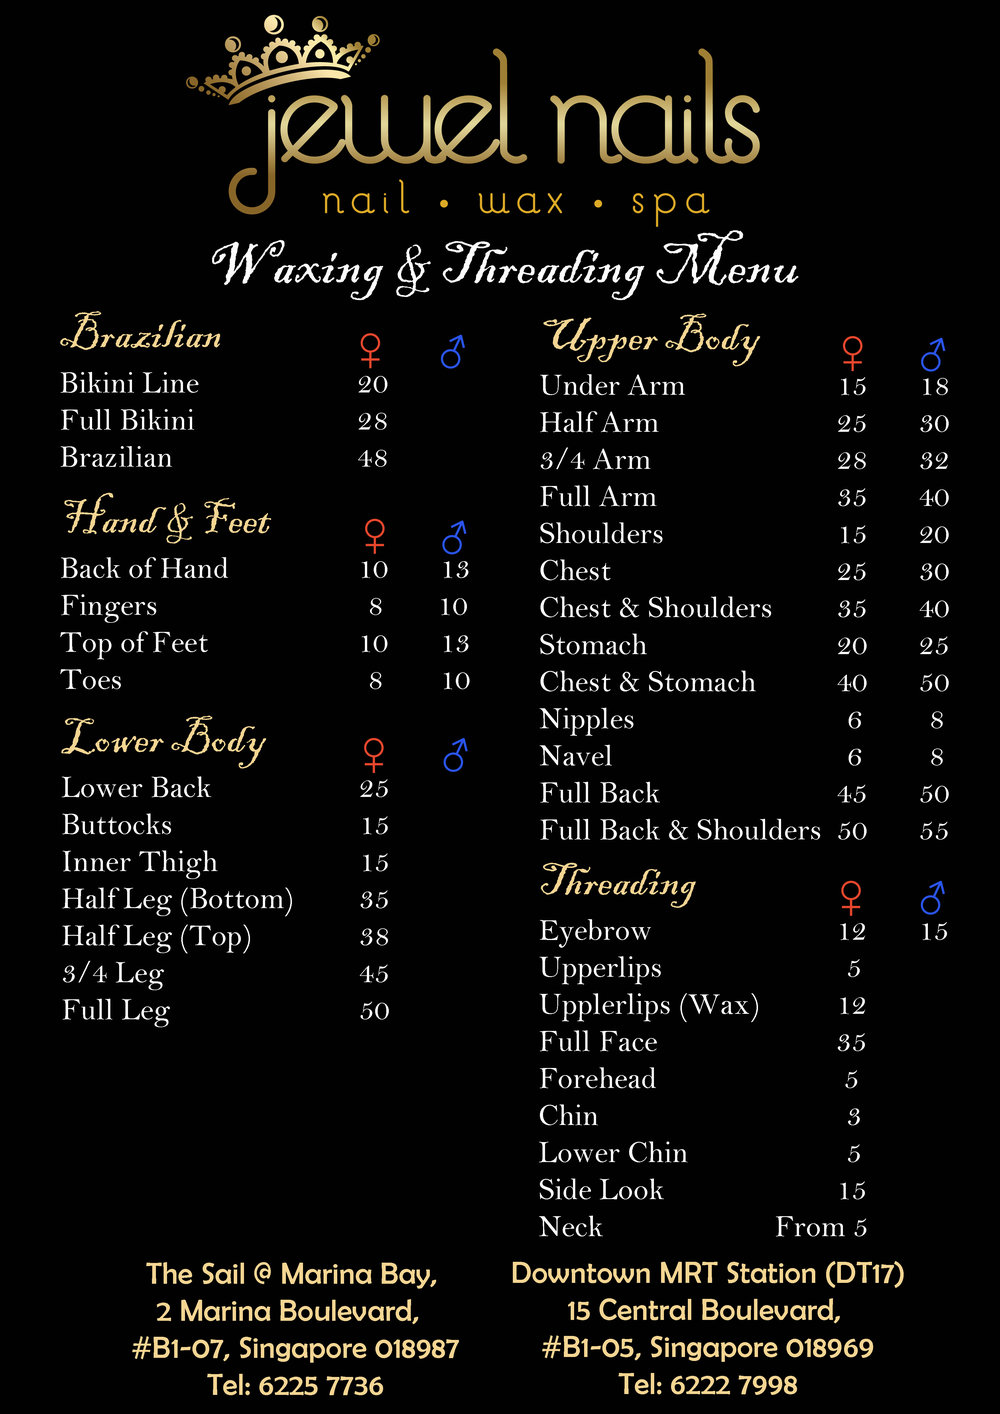 Wax Thread Menu 2018.jpg